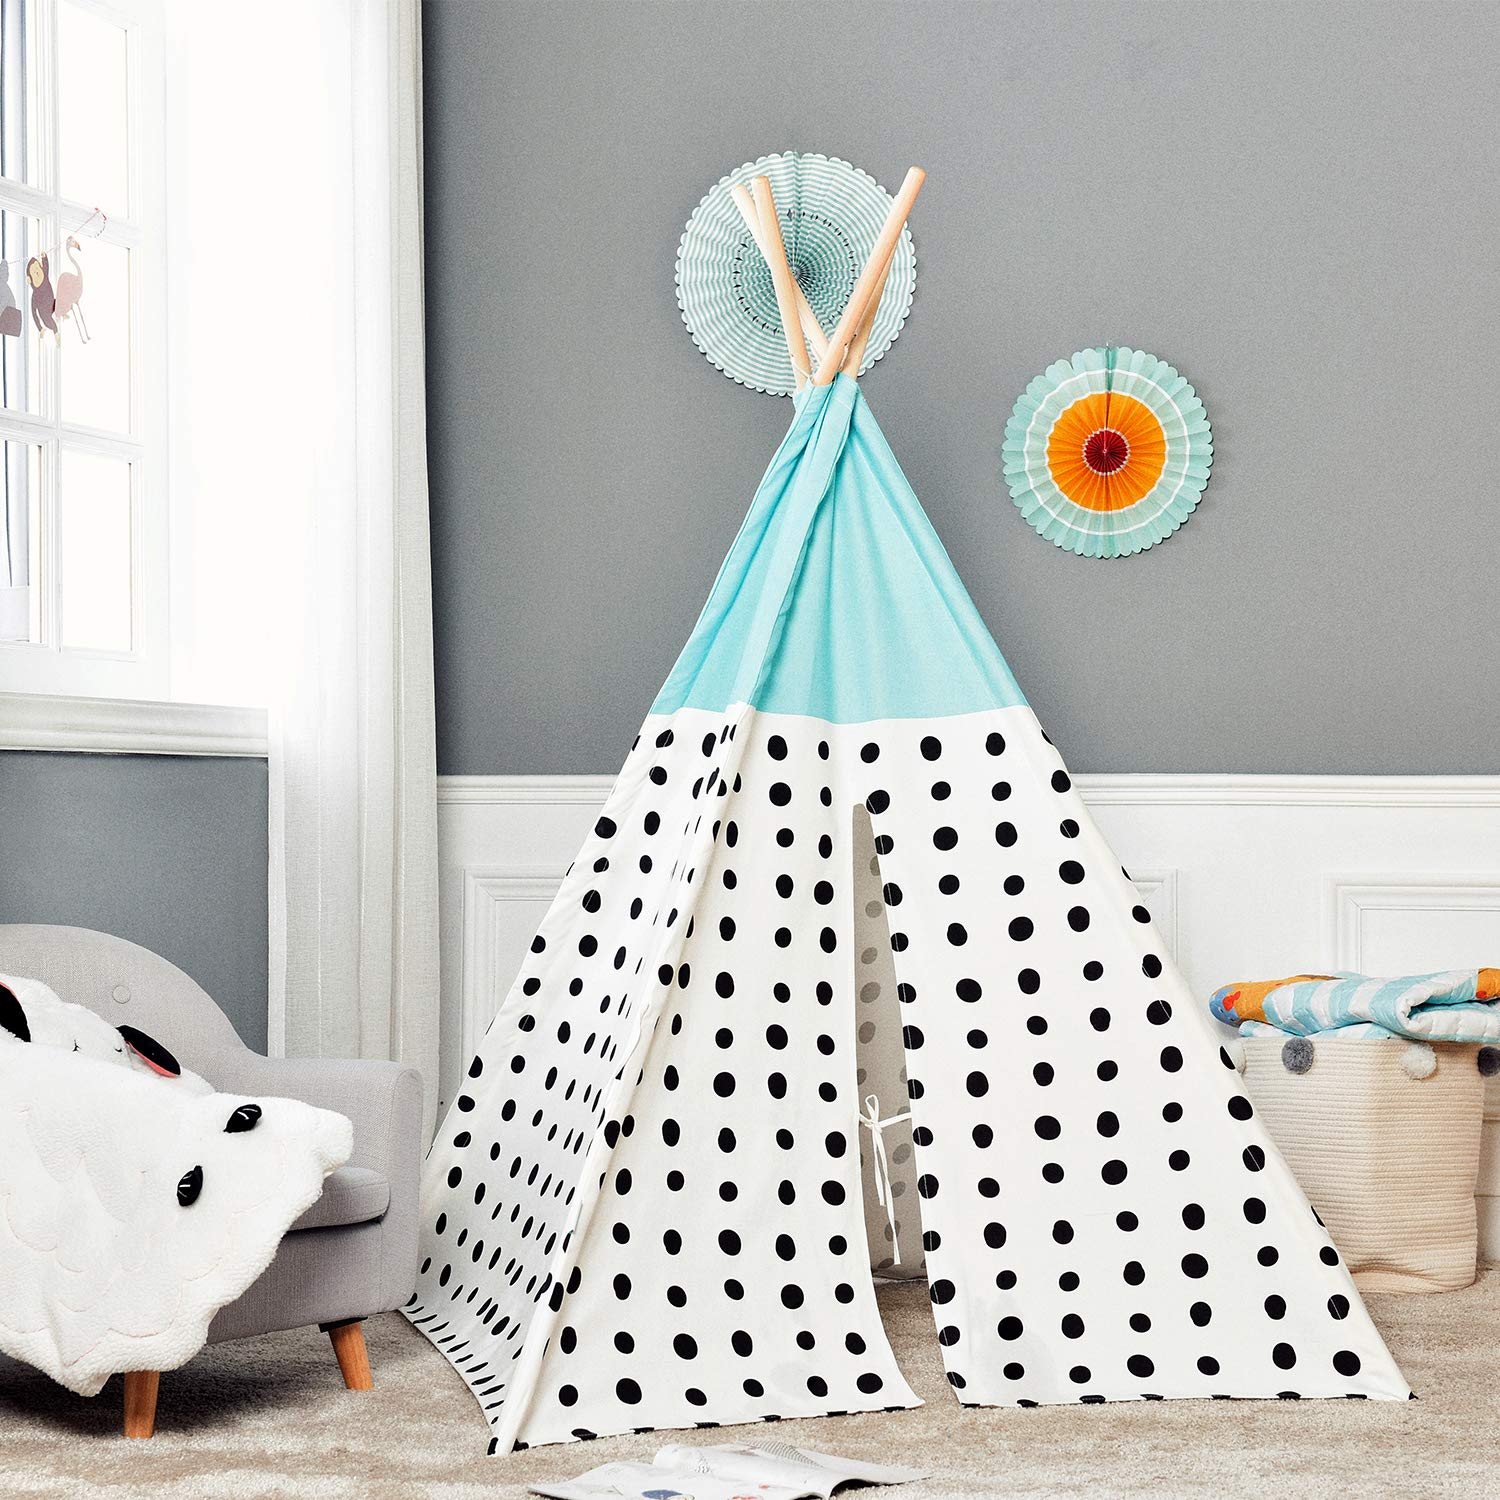 Asweets Teepee Tent for Kids Teepee Play Tent Mat for Boys Indoor Outdoor Play House Tent Indian Canvas Tipi Tent Blue Top Black Point by Asweets (Image #6)